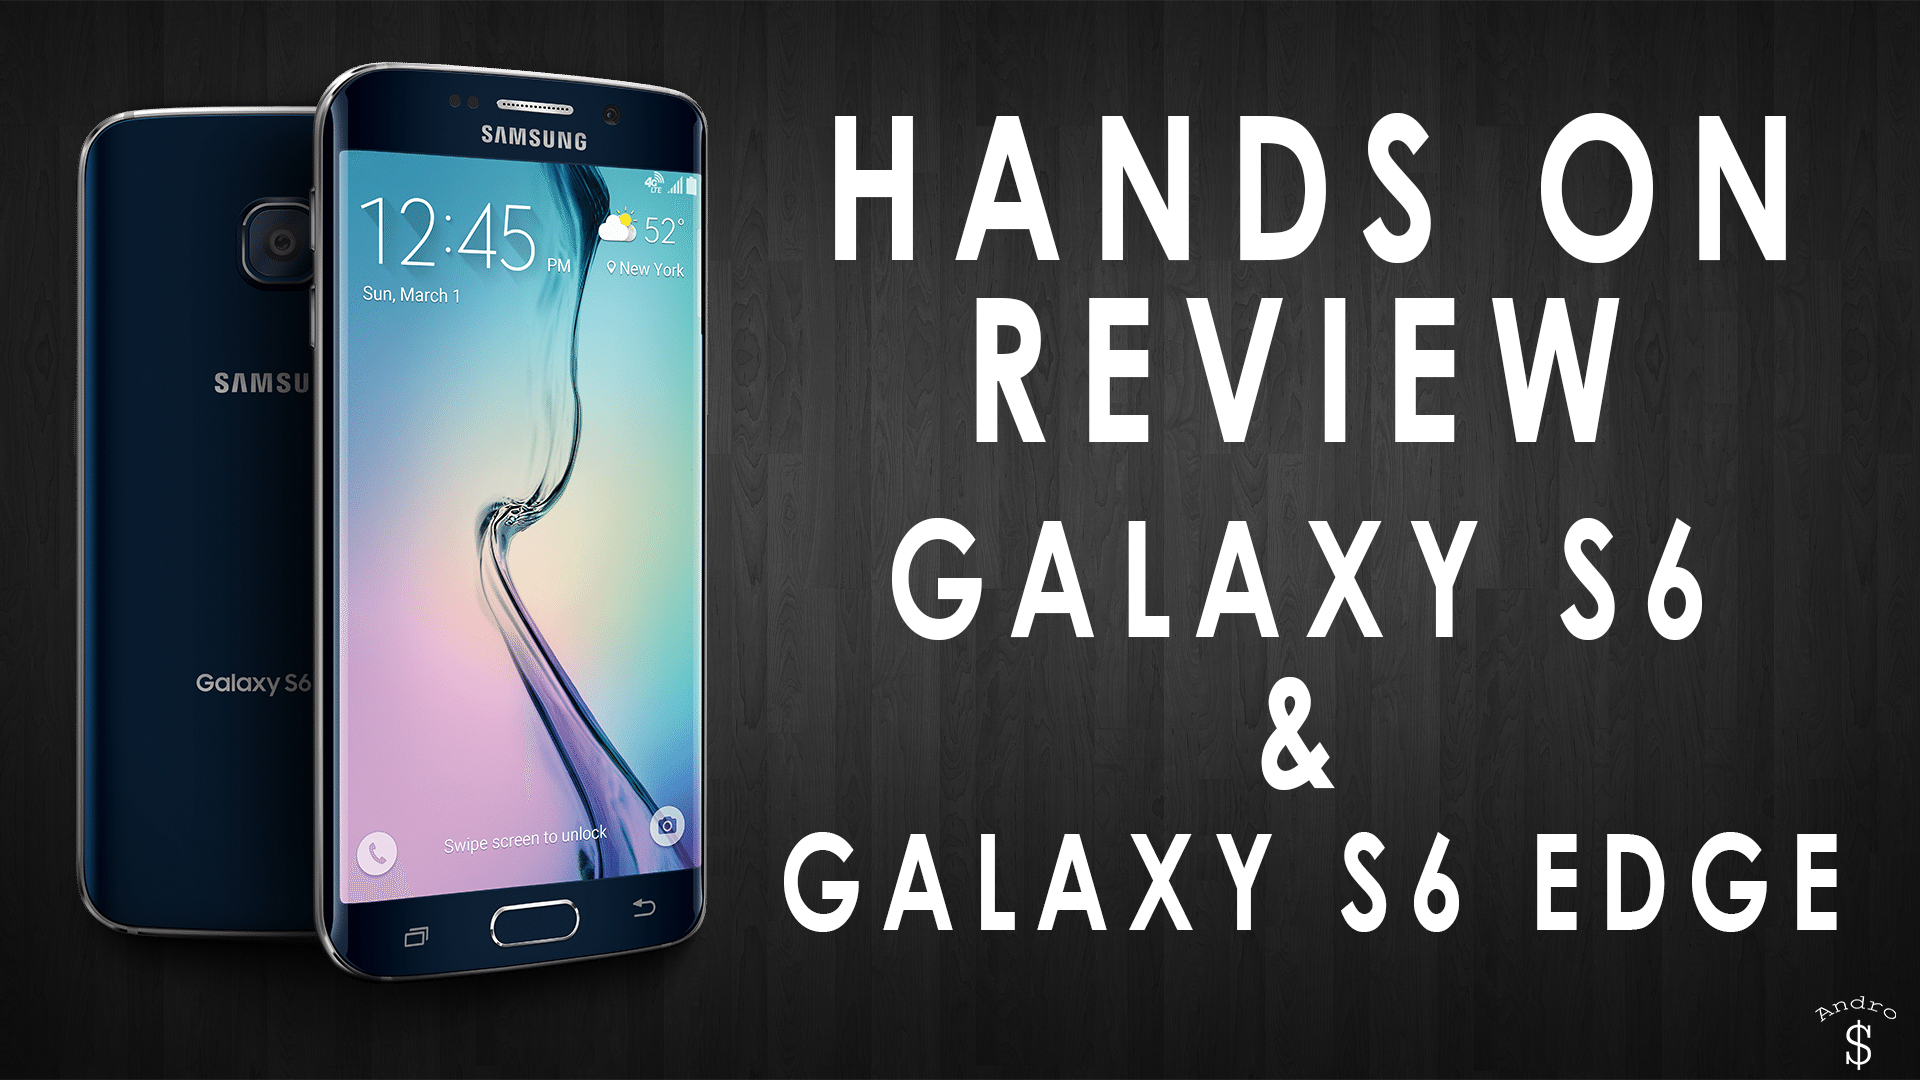 Galaxy S6 & Galaxy S6 Edge Hands On Review – Andro Dollar